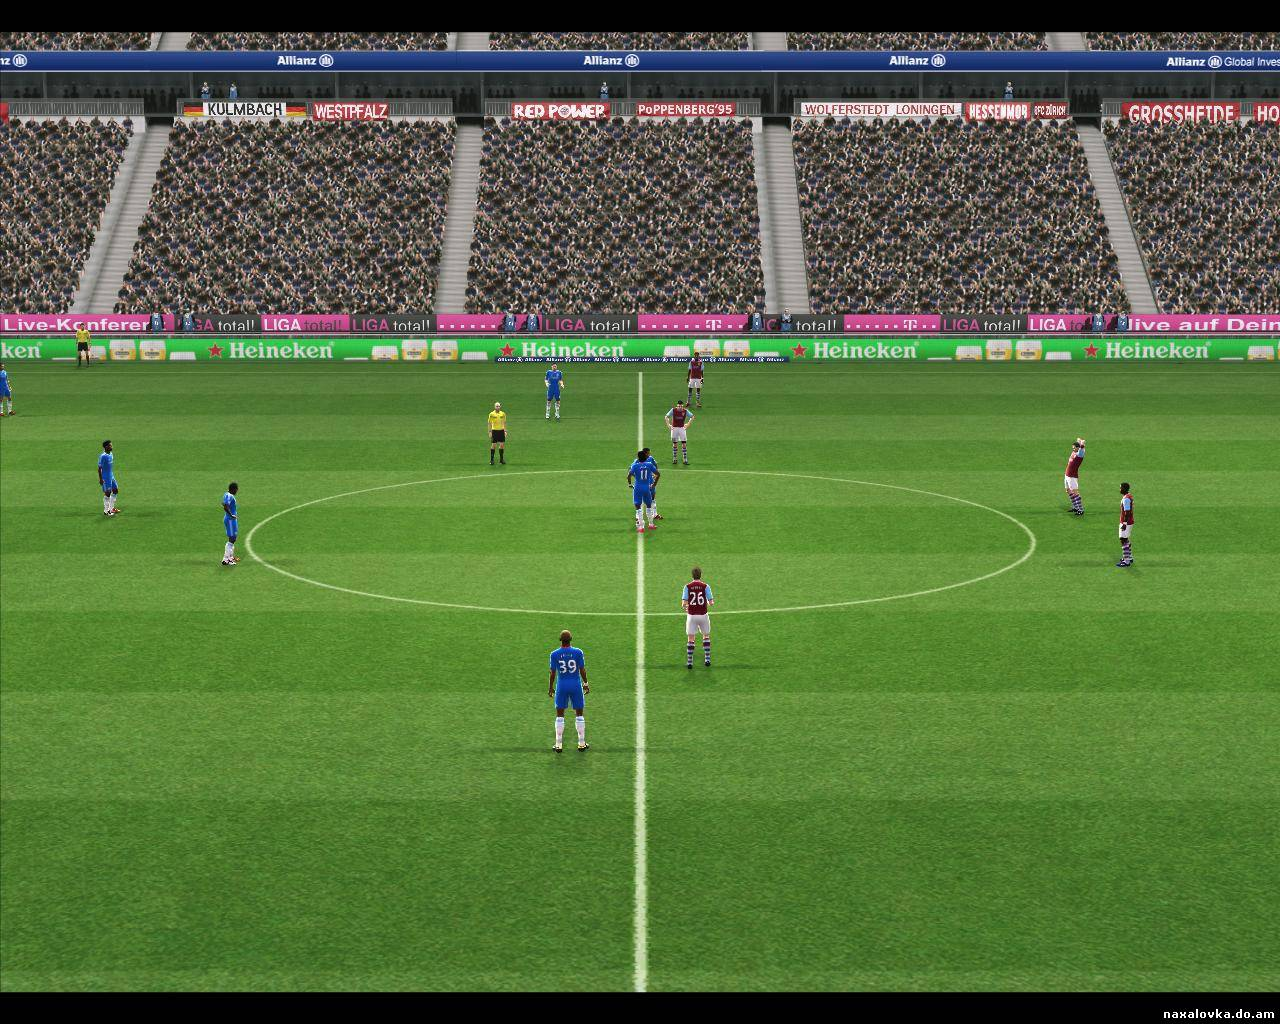 PES 2011 Allians Arena HD/Stadium